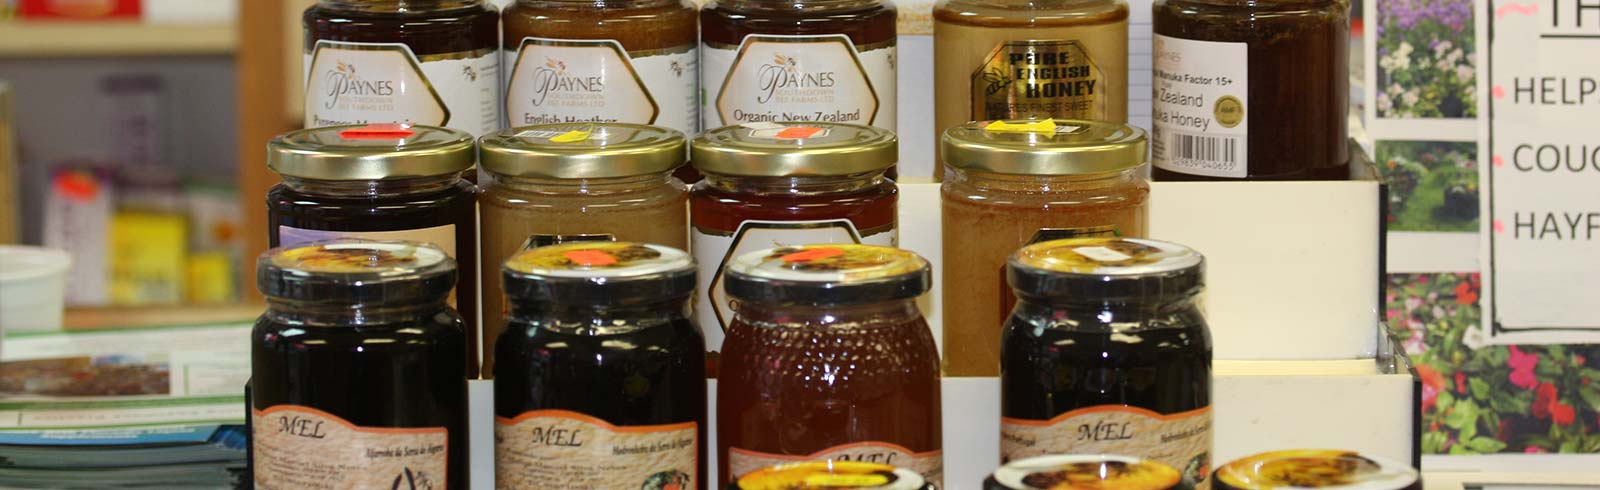 Pure honey jars